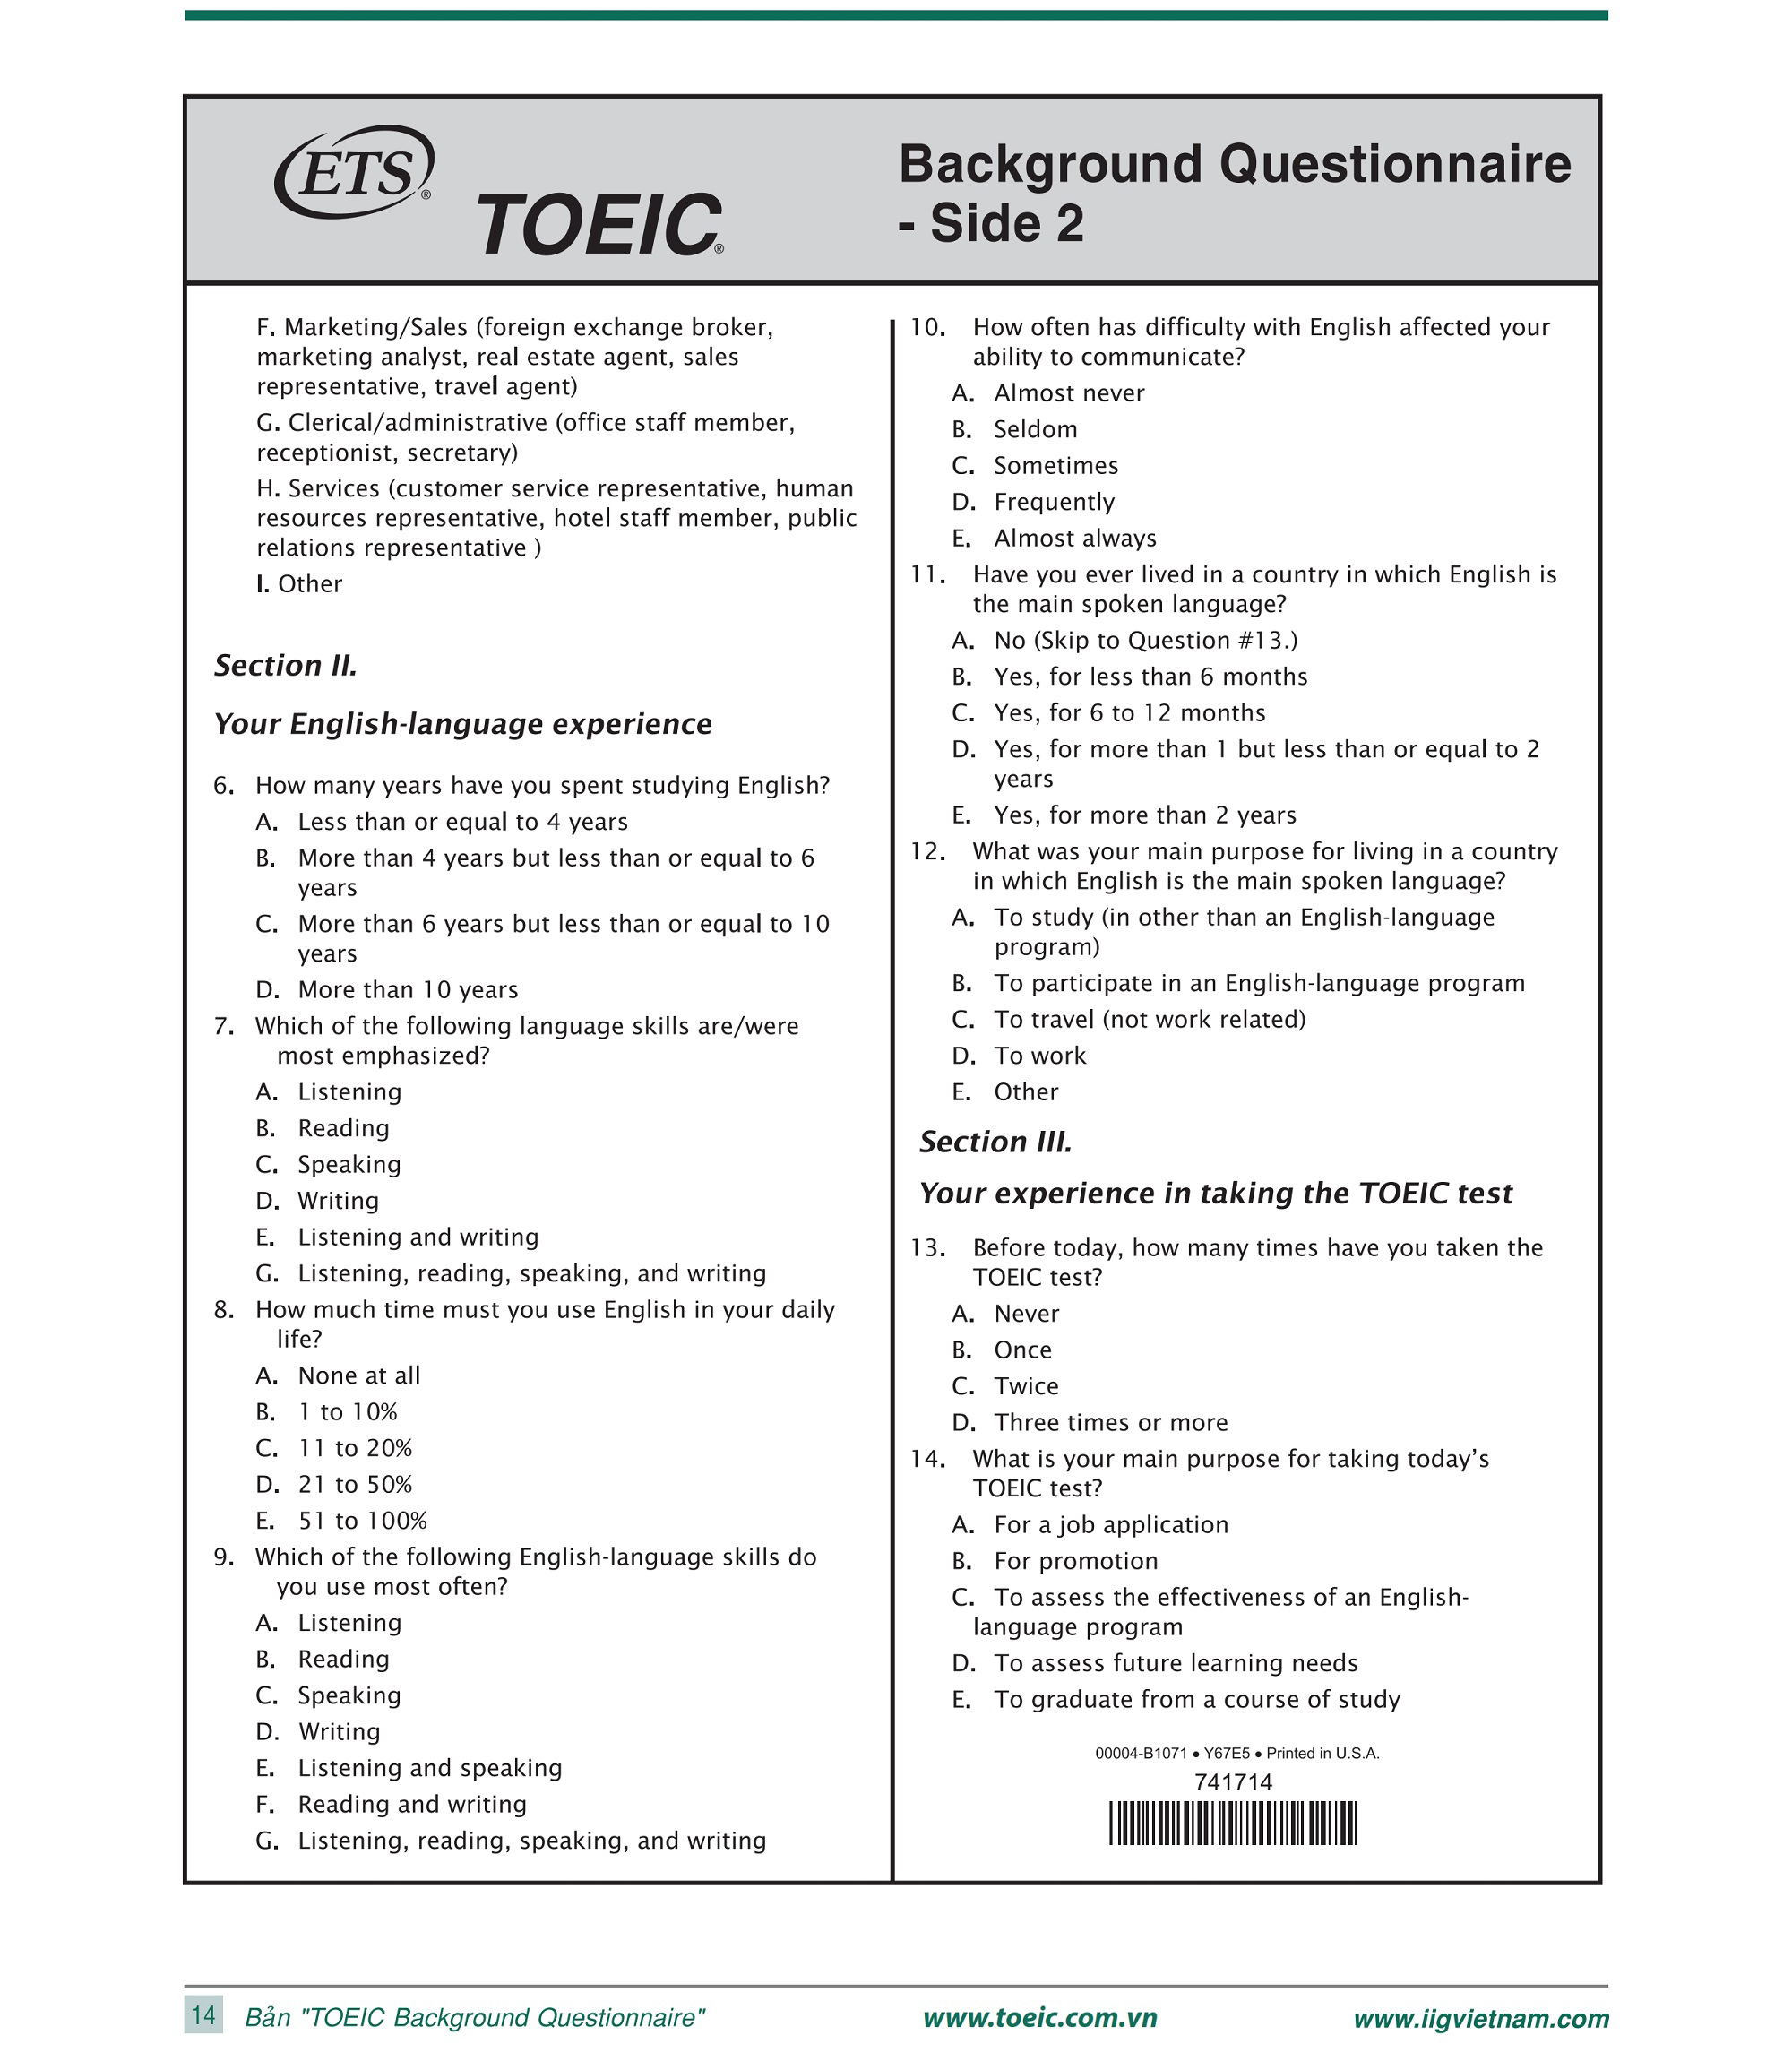 HDDT_TOEIC_015